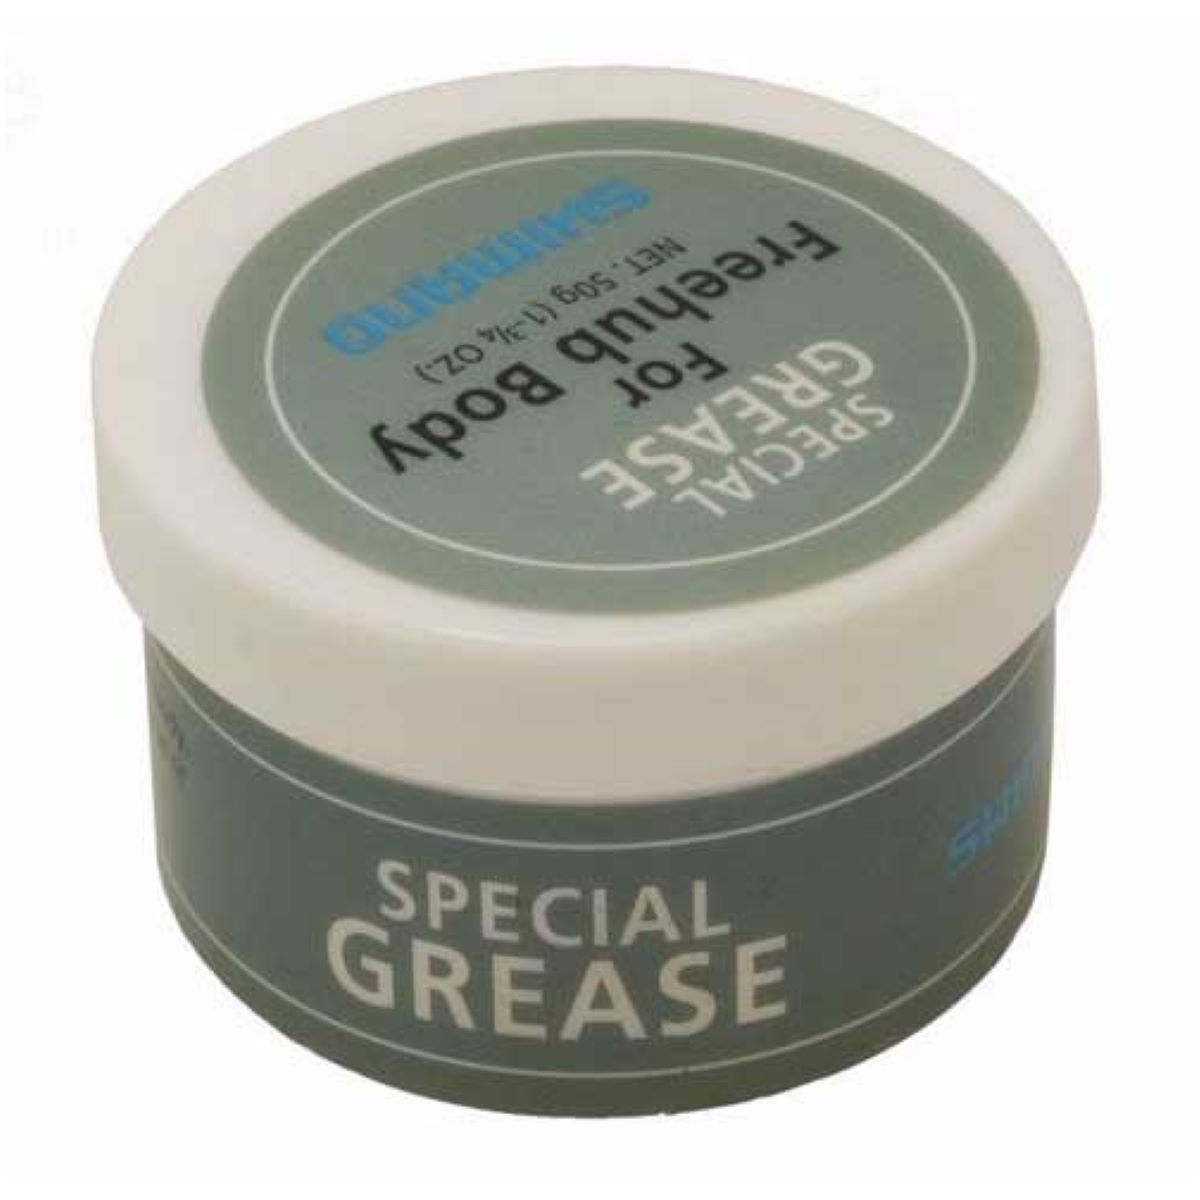 Shimano Special Grease - For Freehub Bodies - 50g  Grease